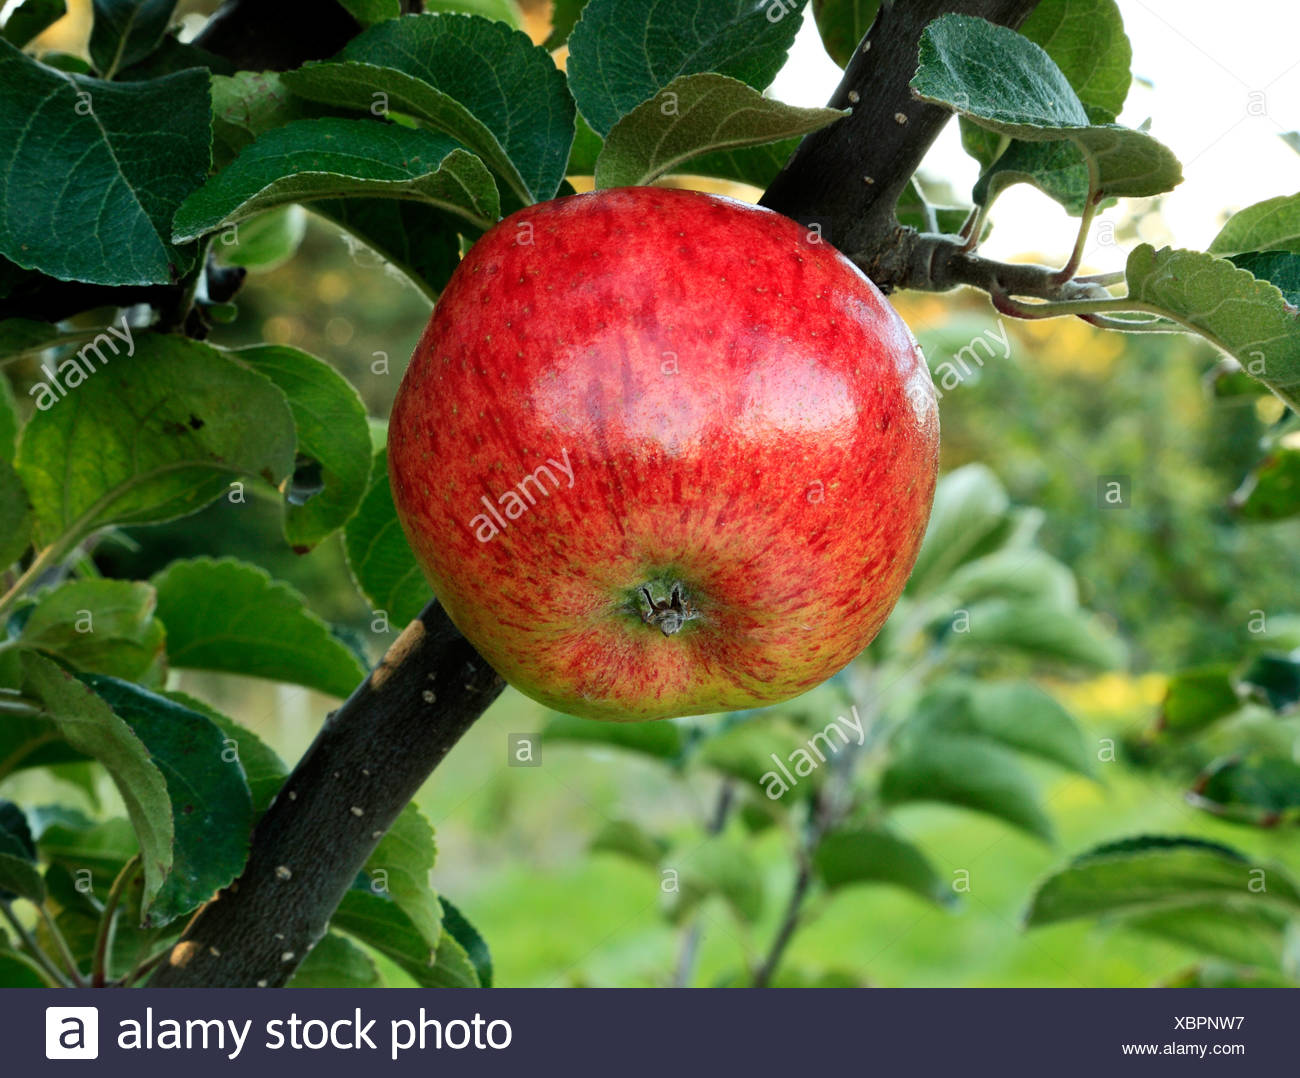 Apple 'Jolly Miller', Stock Photo